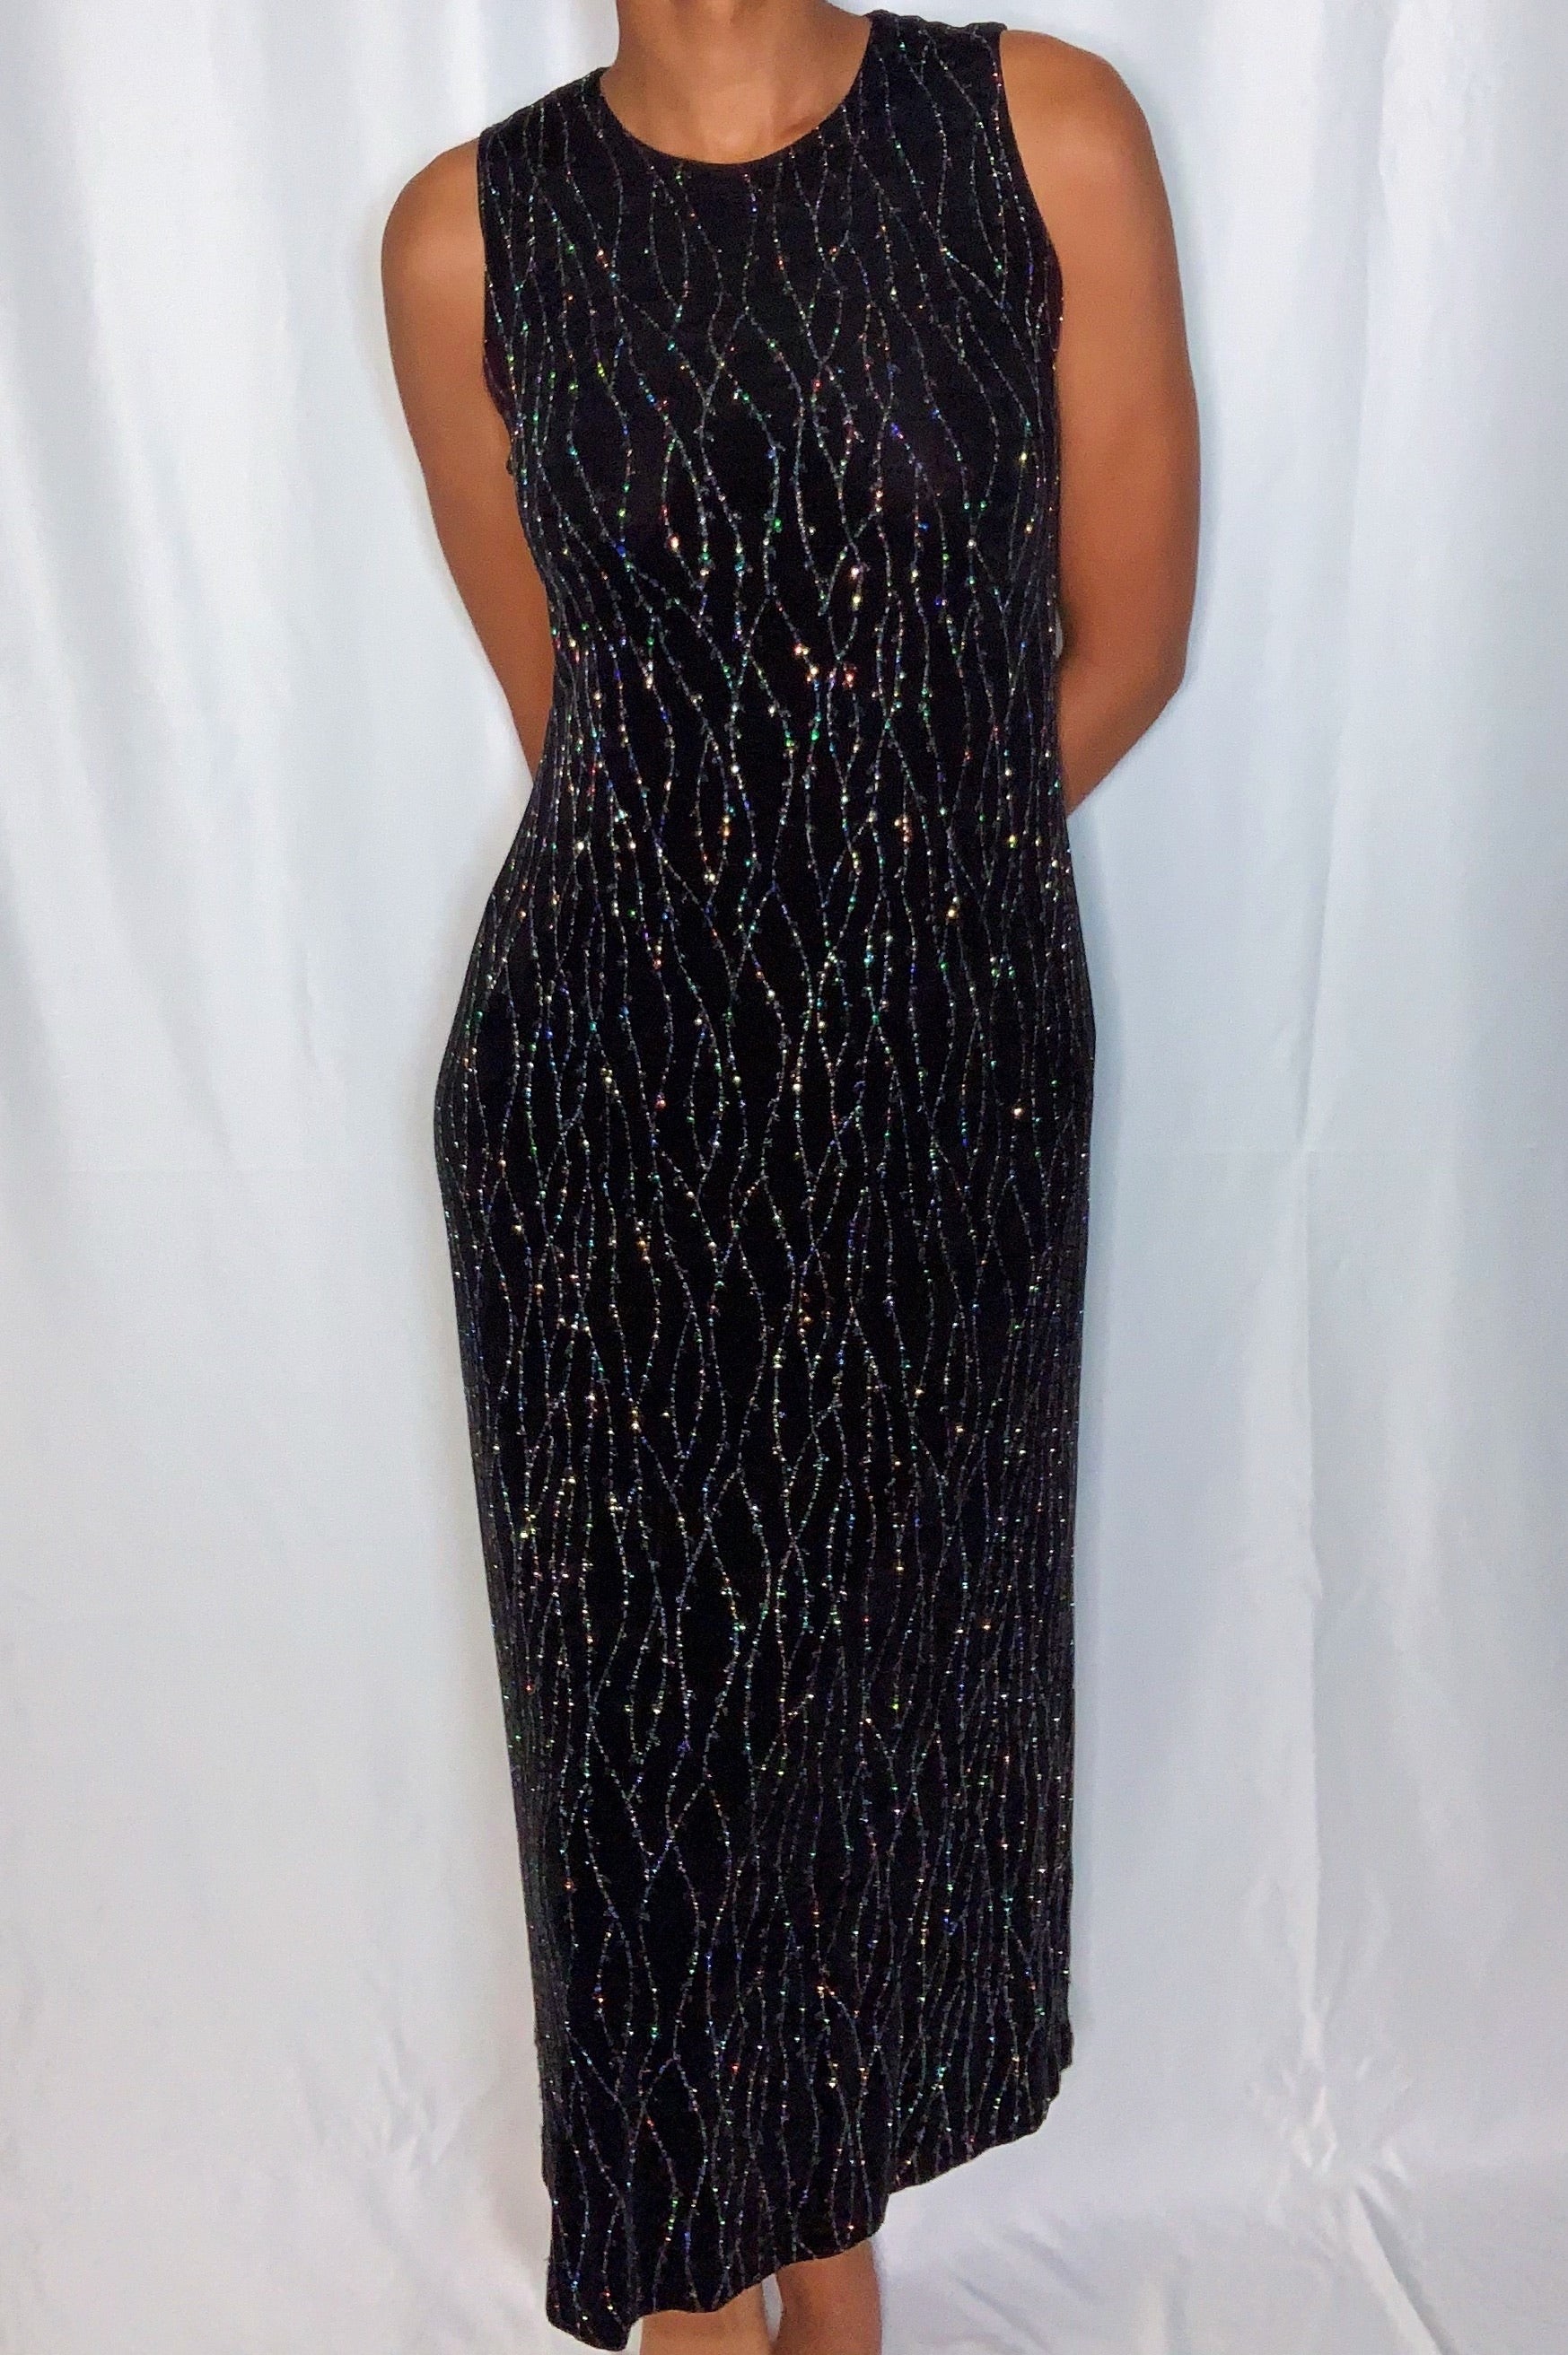 Vintage Glitter and Sparkly Dress by Ronni Nicole (size 10P)